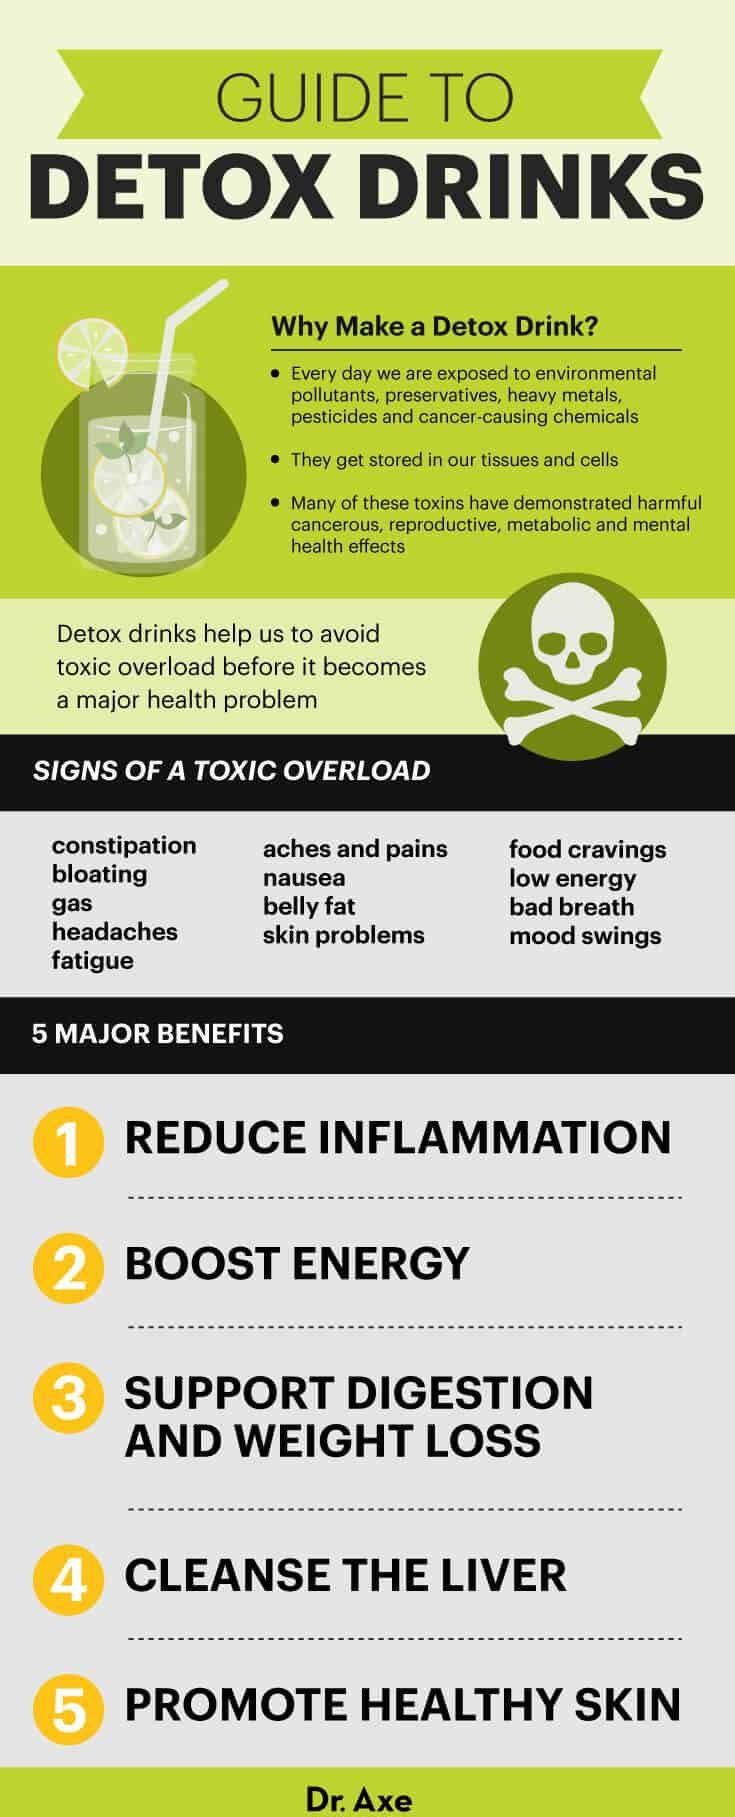 Detox Drink Guide - Dr. Axe.